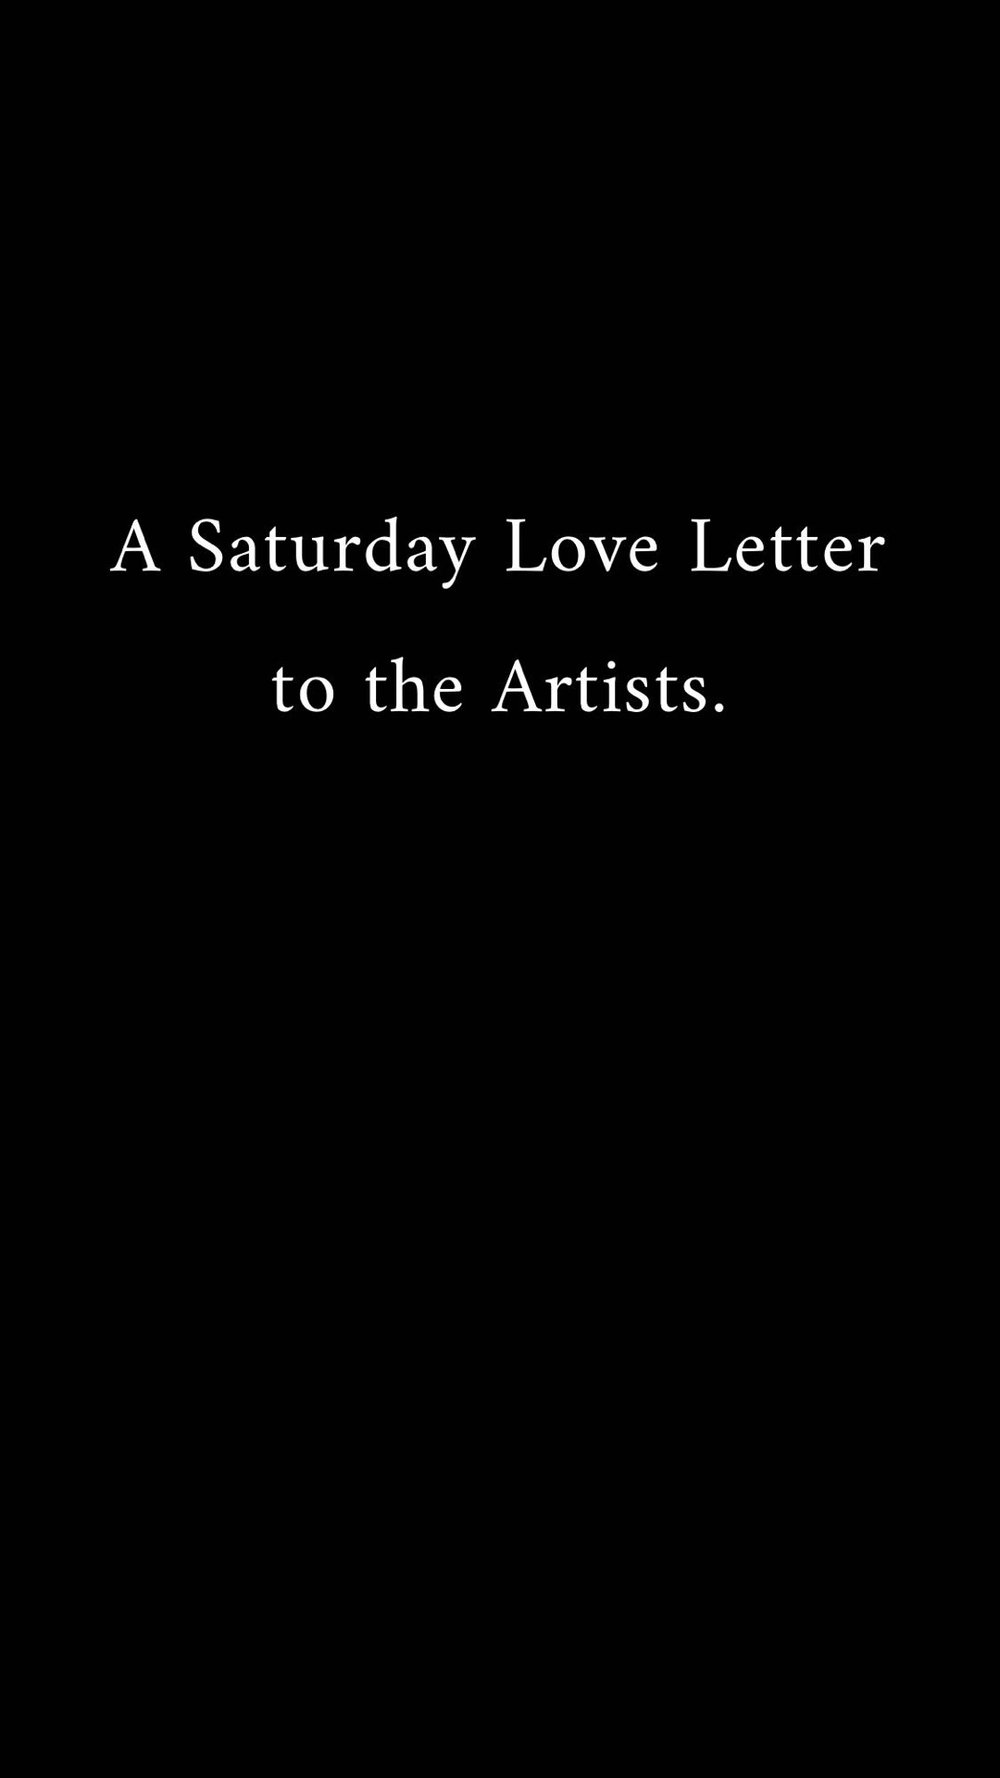 Saturday Love Letters Cover.jpg